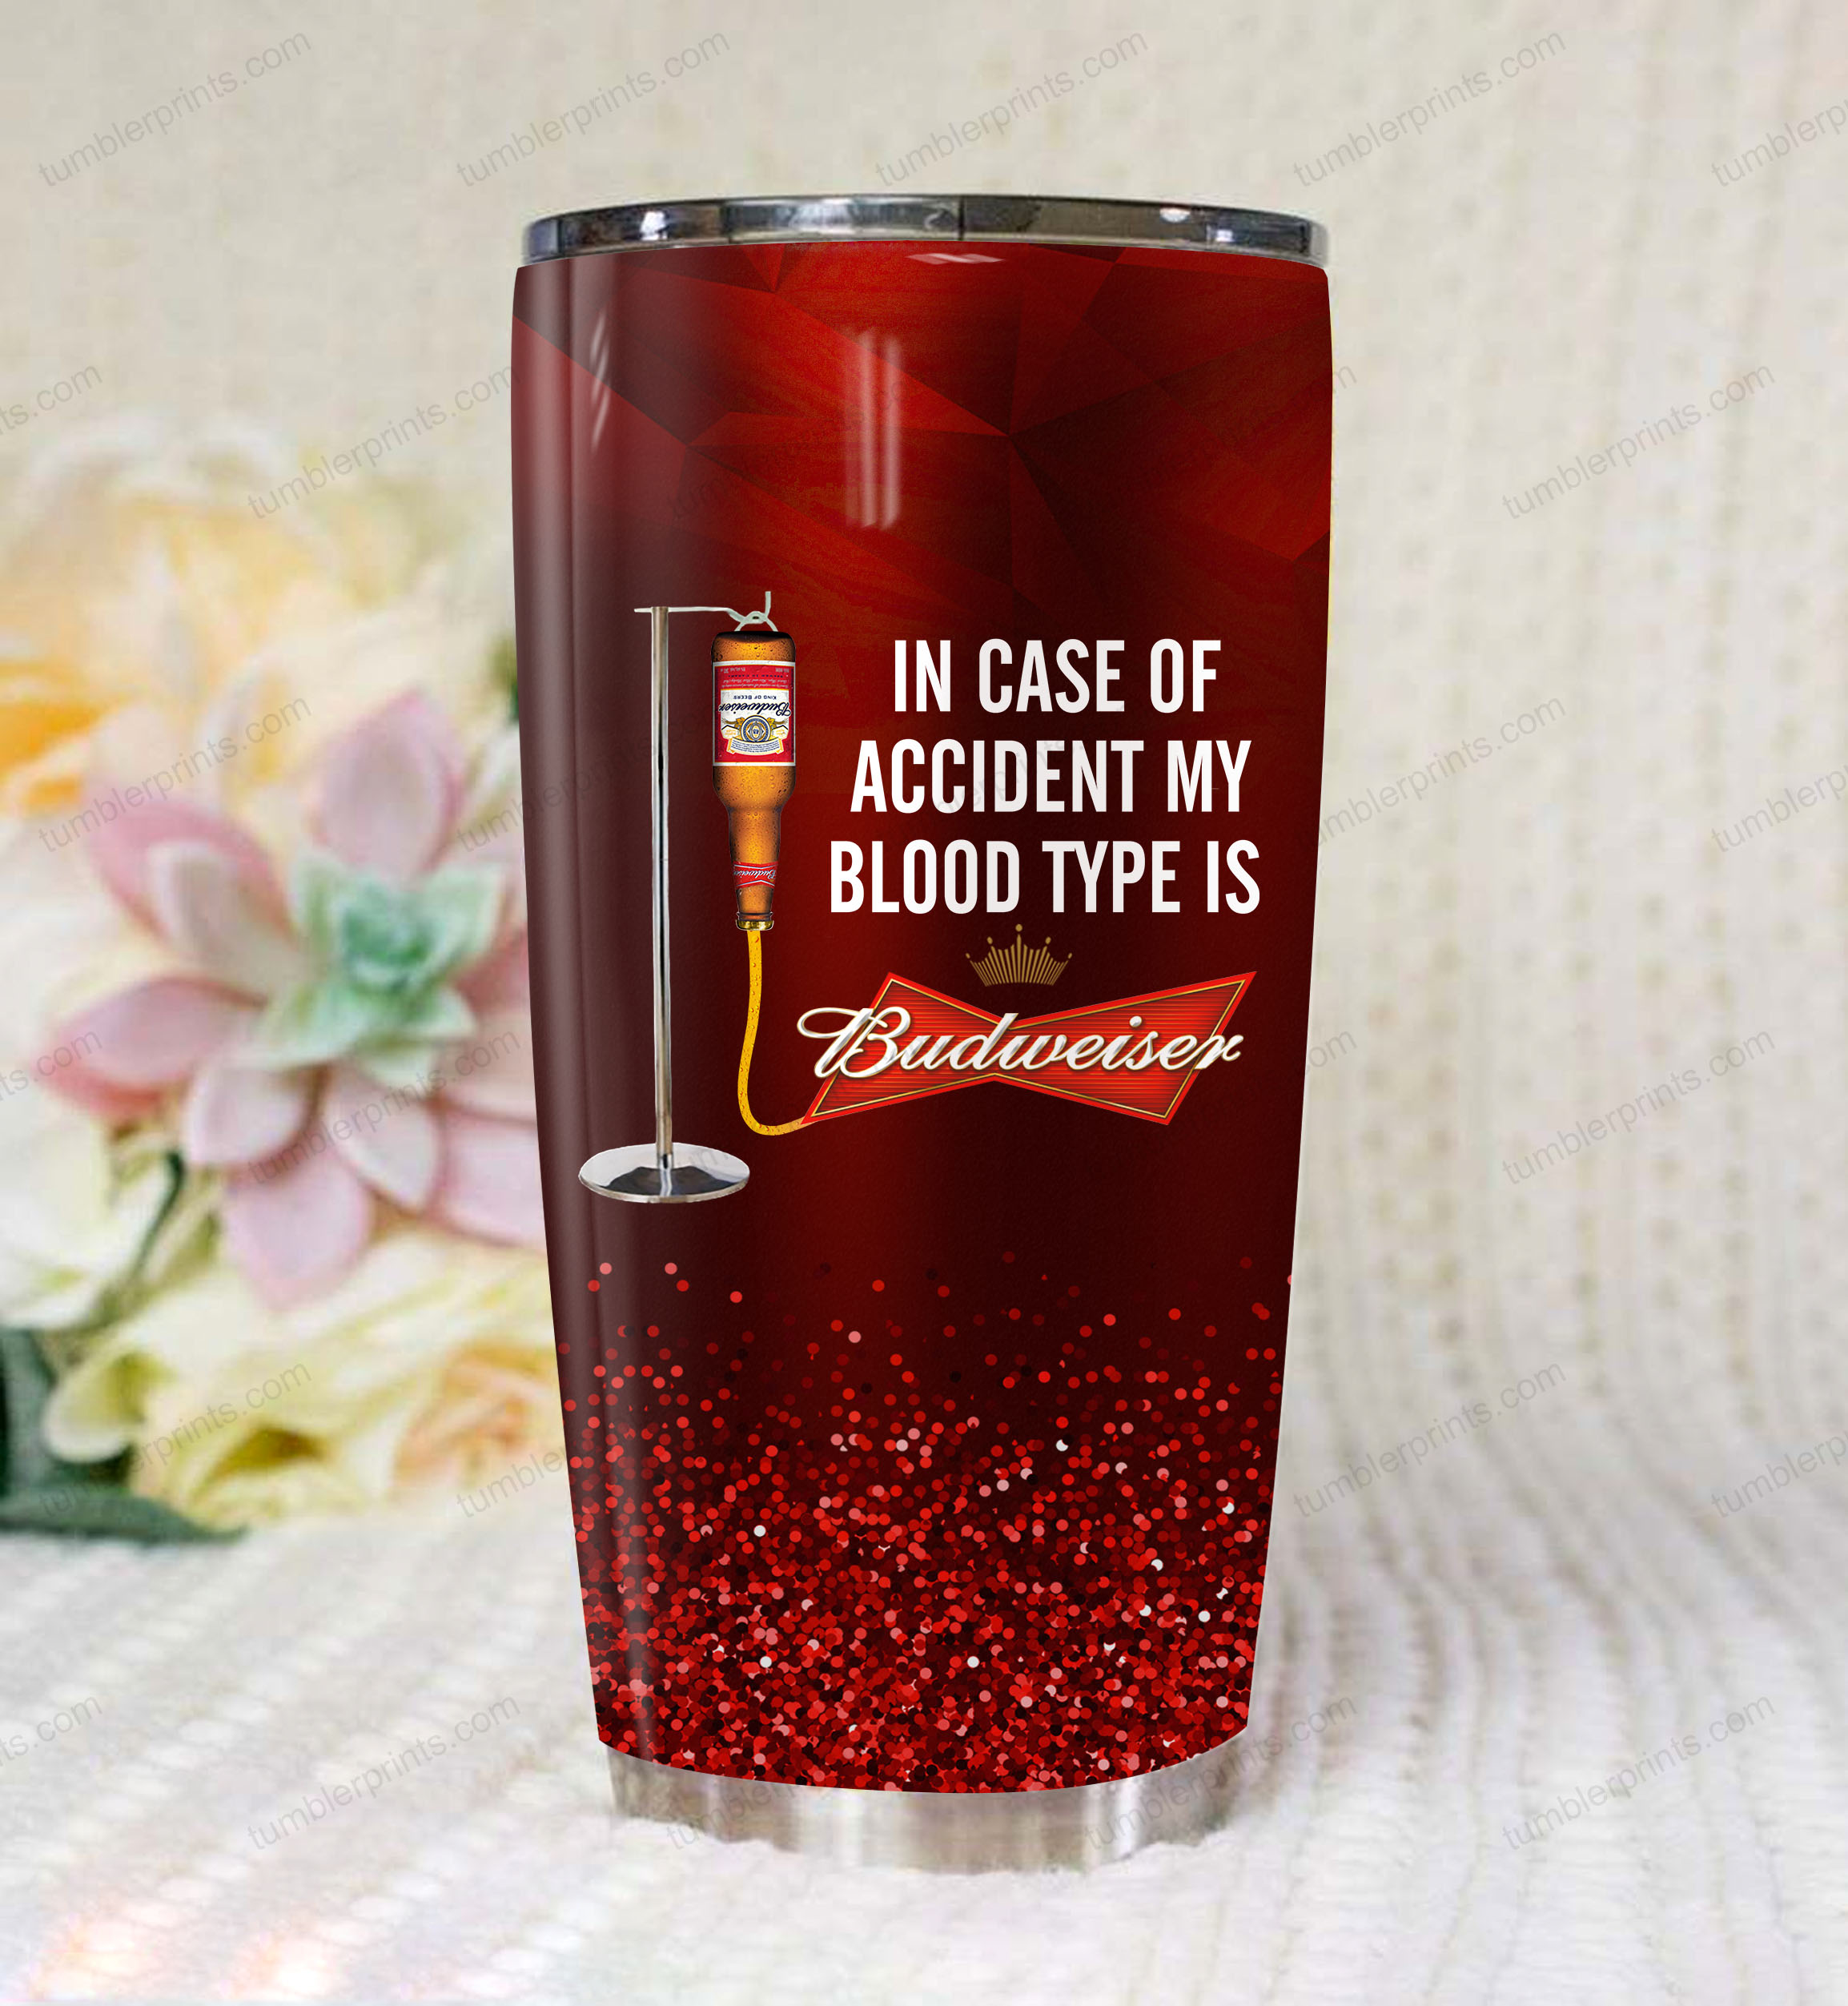 In case of an accident my blood type is budweiser full printing tumbler 2